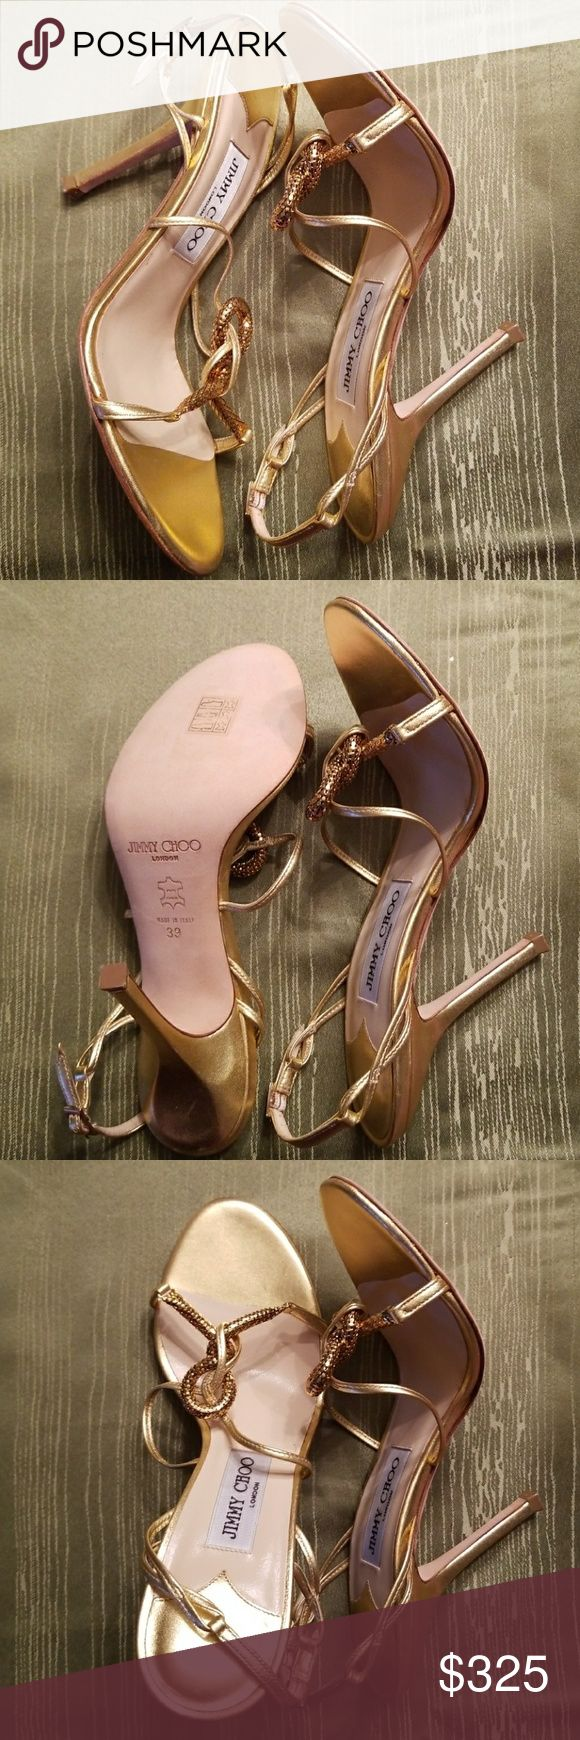 Brand New Jimmy Choo Gold Strappy Sandals Beautiful, versatile gold sandals for the very special occasions only. 4 inch heels. Never worn. NWOB Jimmy Choo Shoes Sandals